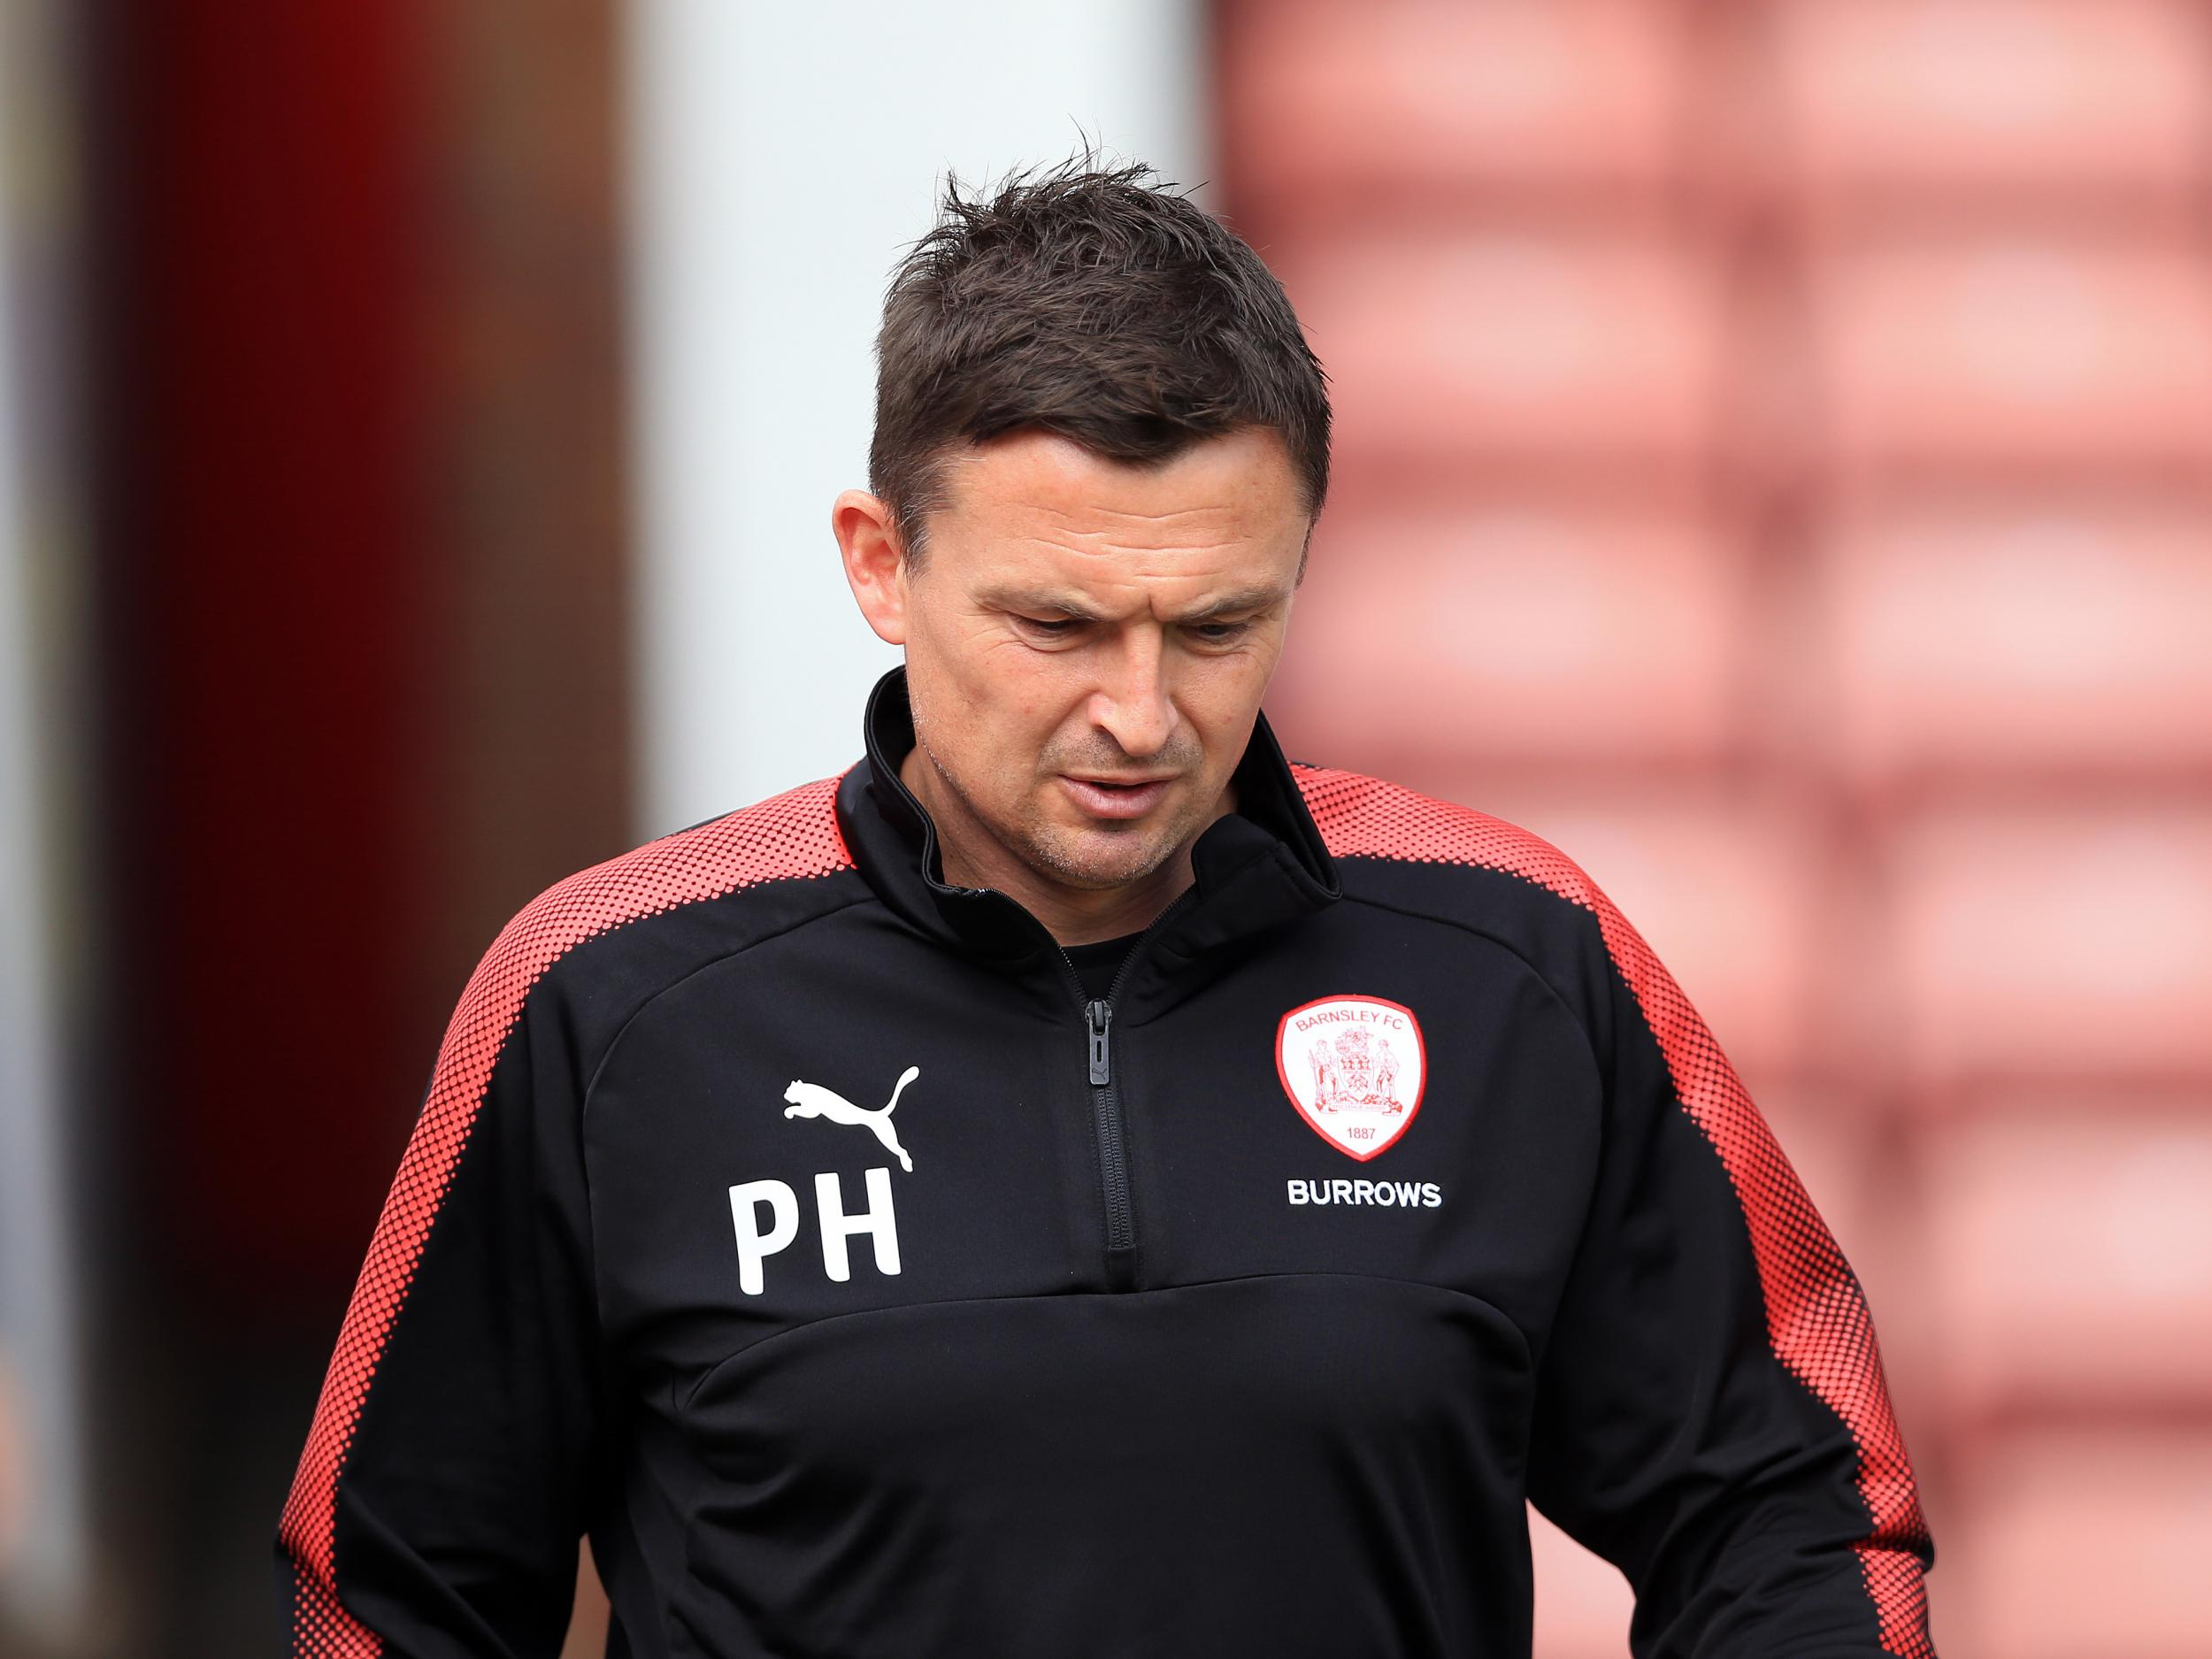 Leeds United appoint Paul Heckingbottom as new head coach on one-and-a-half-year contract